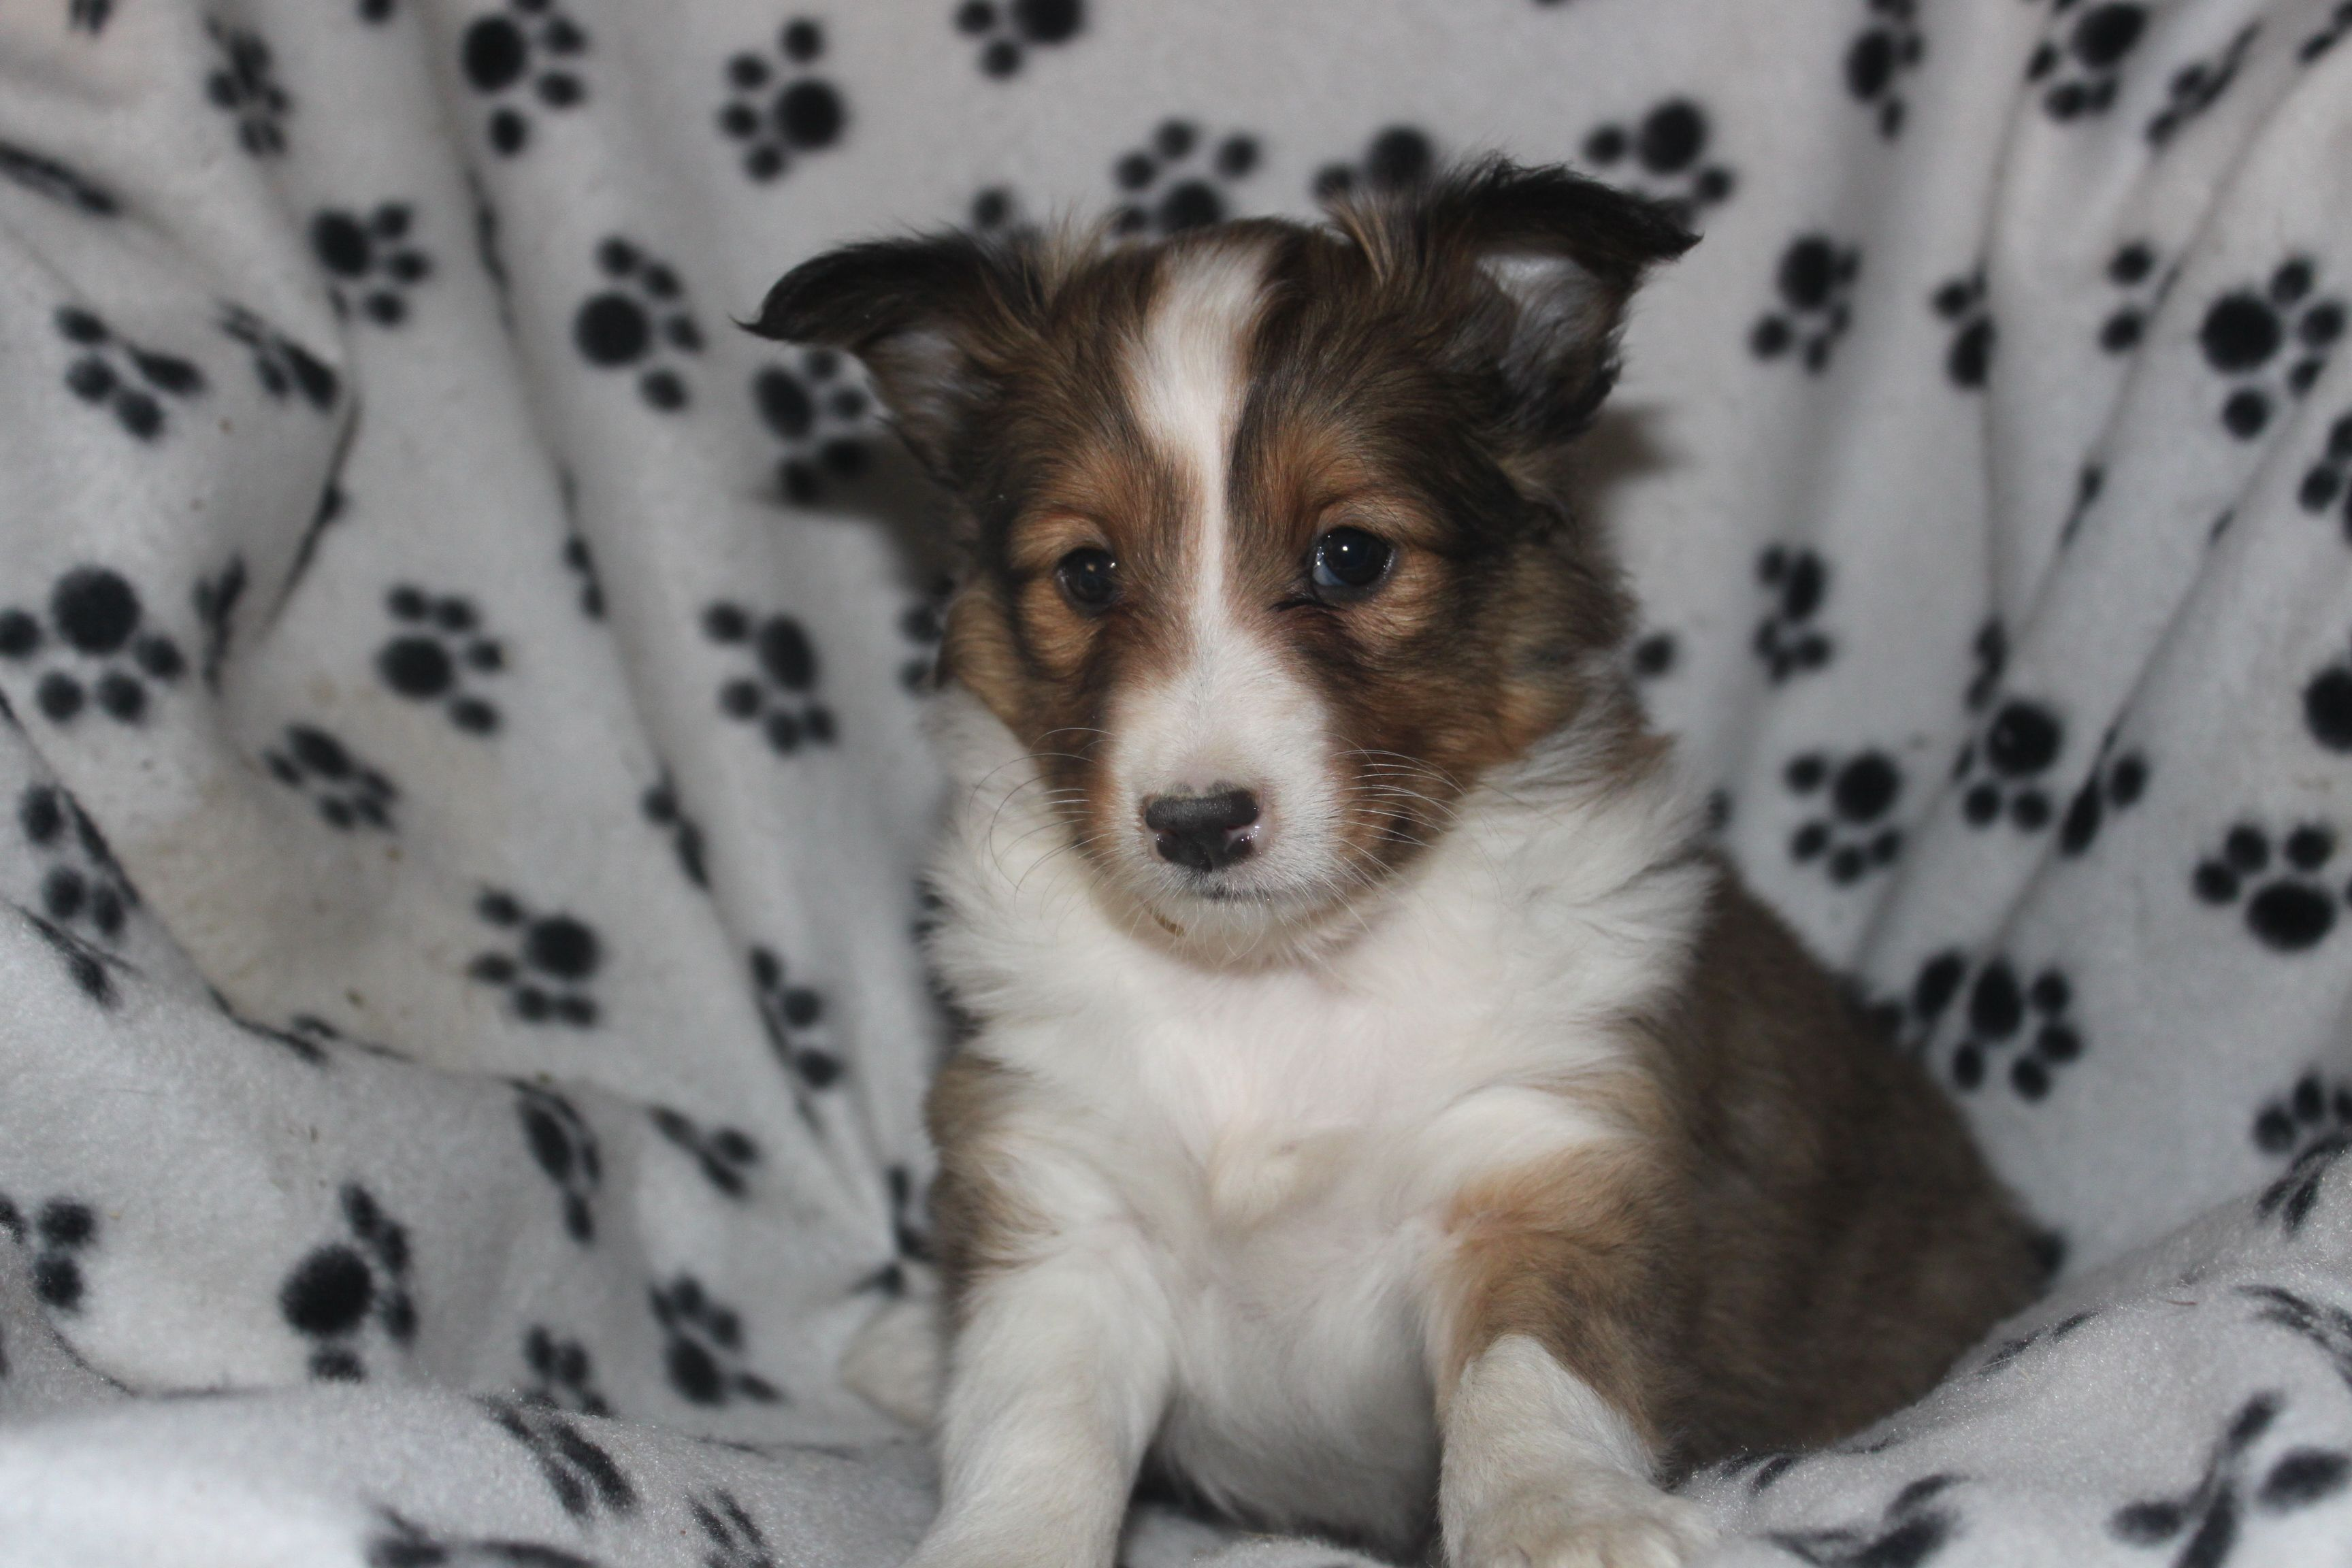 Sheltie Puppy For Sale In Pa This Is A Sheltie Puppy 8 Weeks Old For Sale At Http Www Network34 Com Sheltie Puppies For Sale Sheltie Puppy Puppies